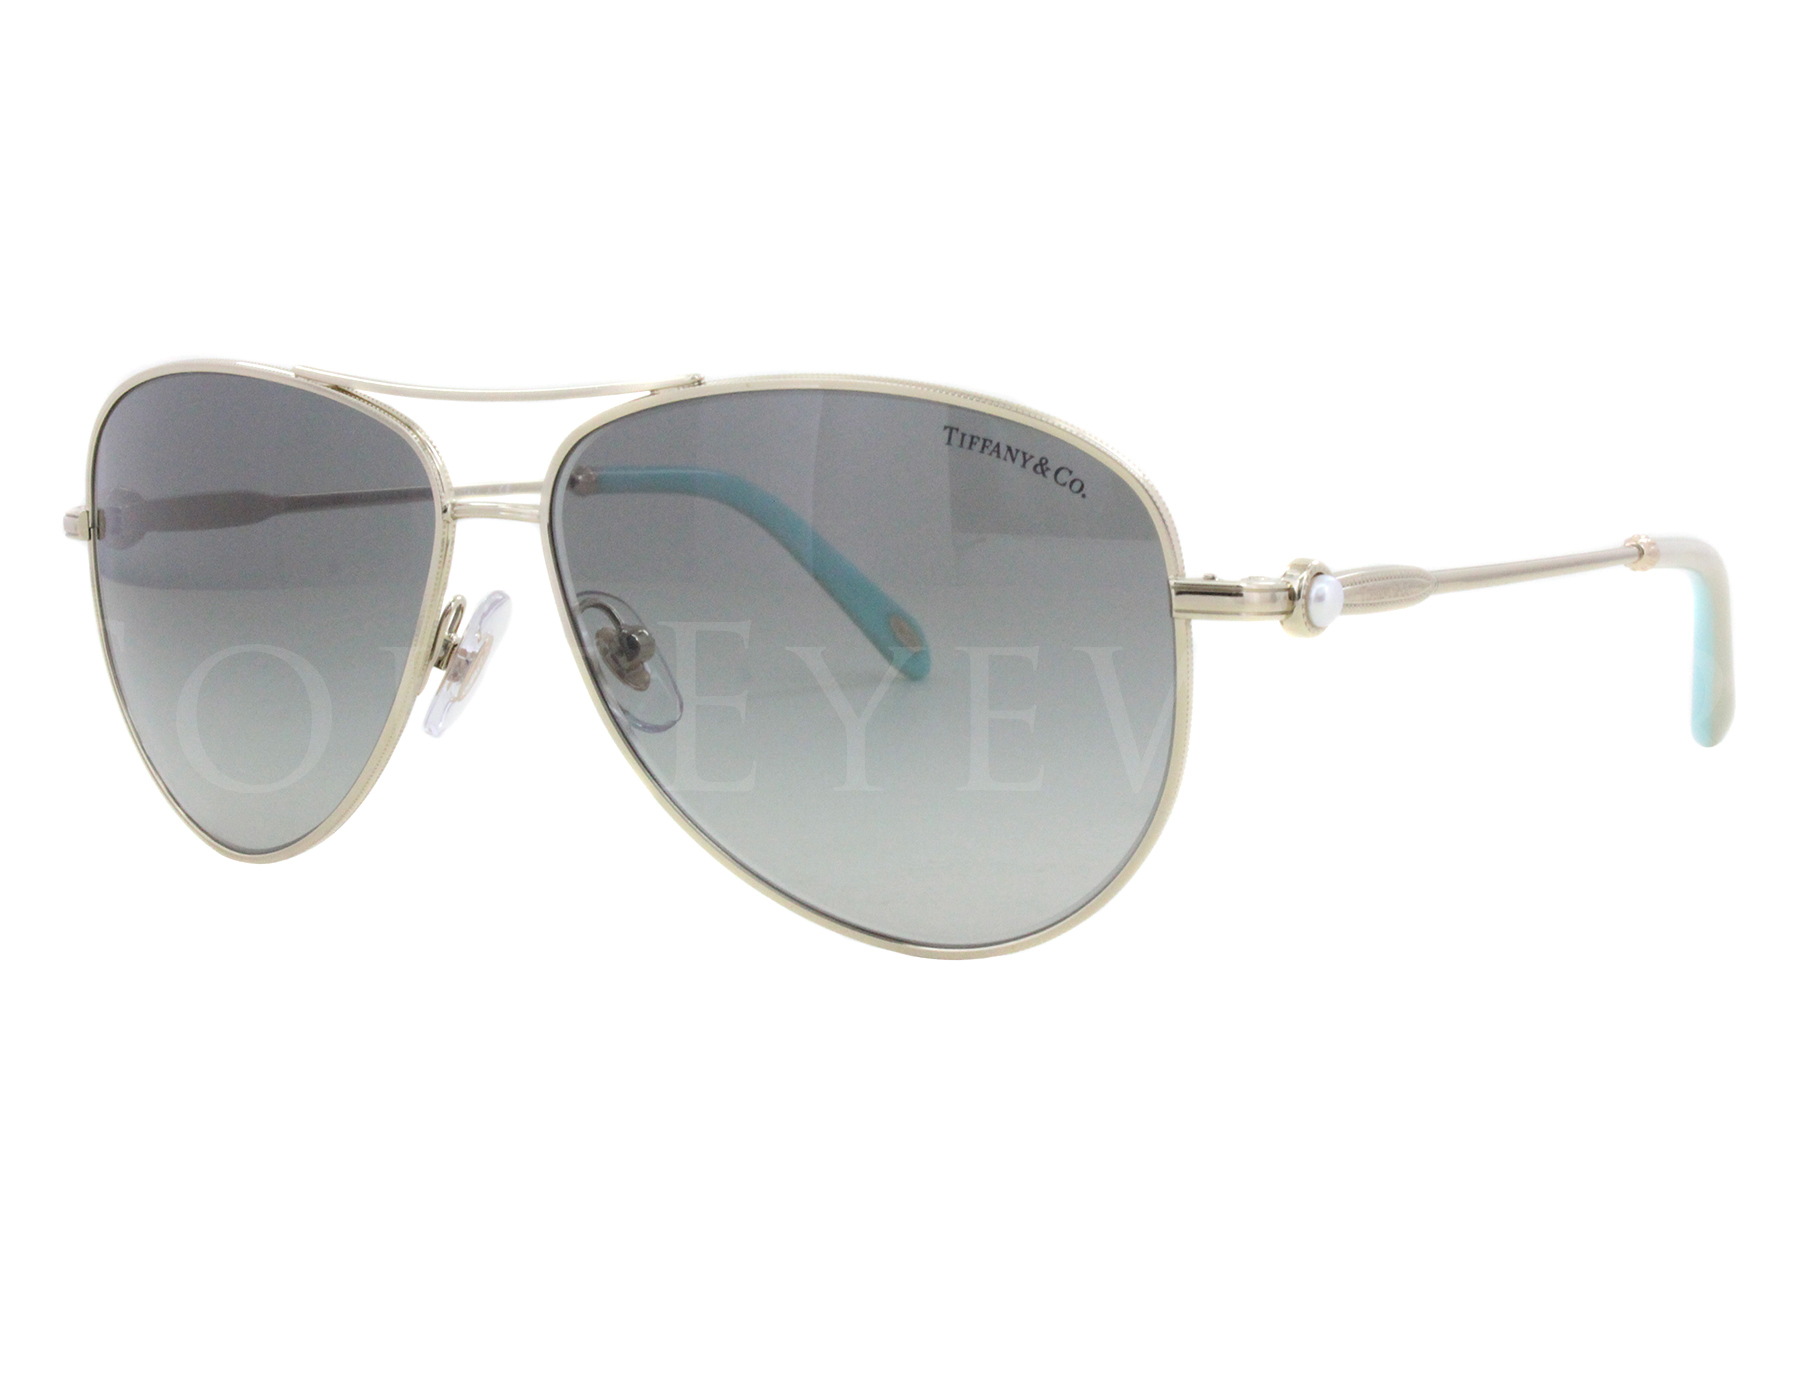 678cf4453 Details about NEW Tiffany & Co. TF 3043H 6087 3C 58 Matte Gold Grey Shaded  Sunglasses